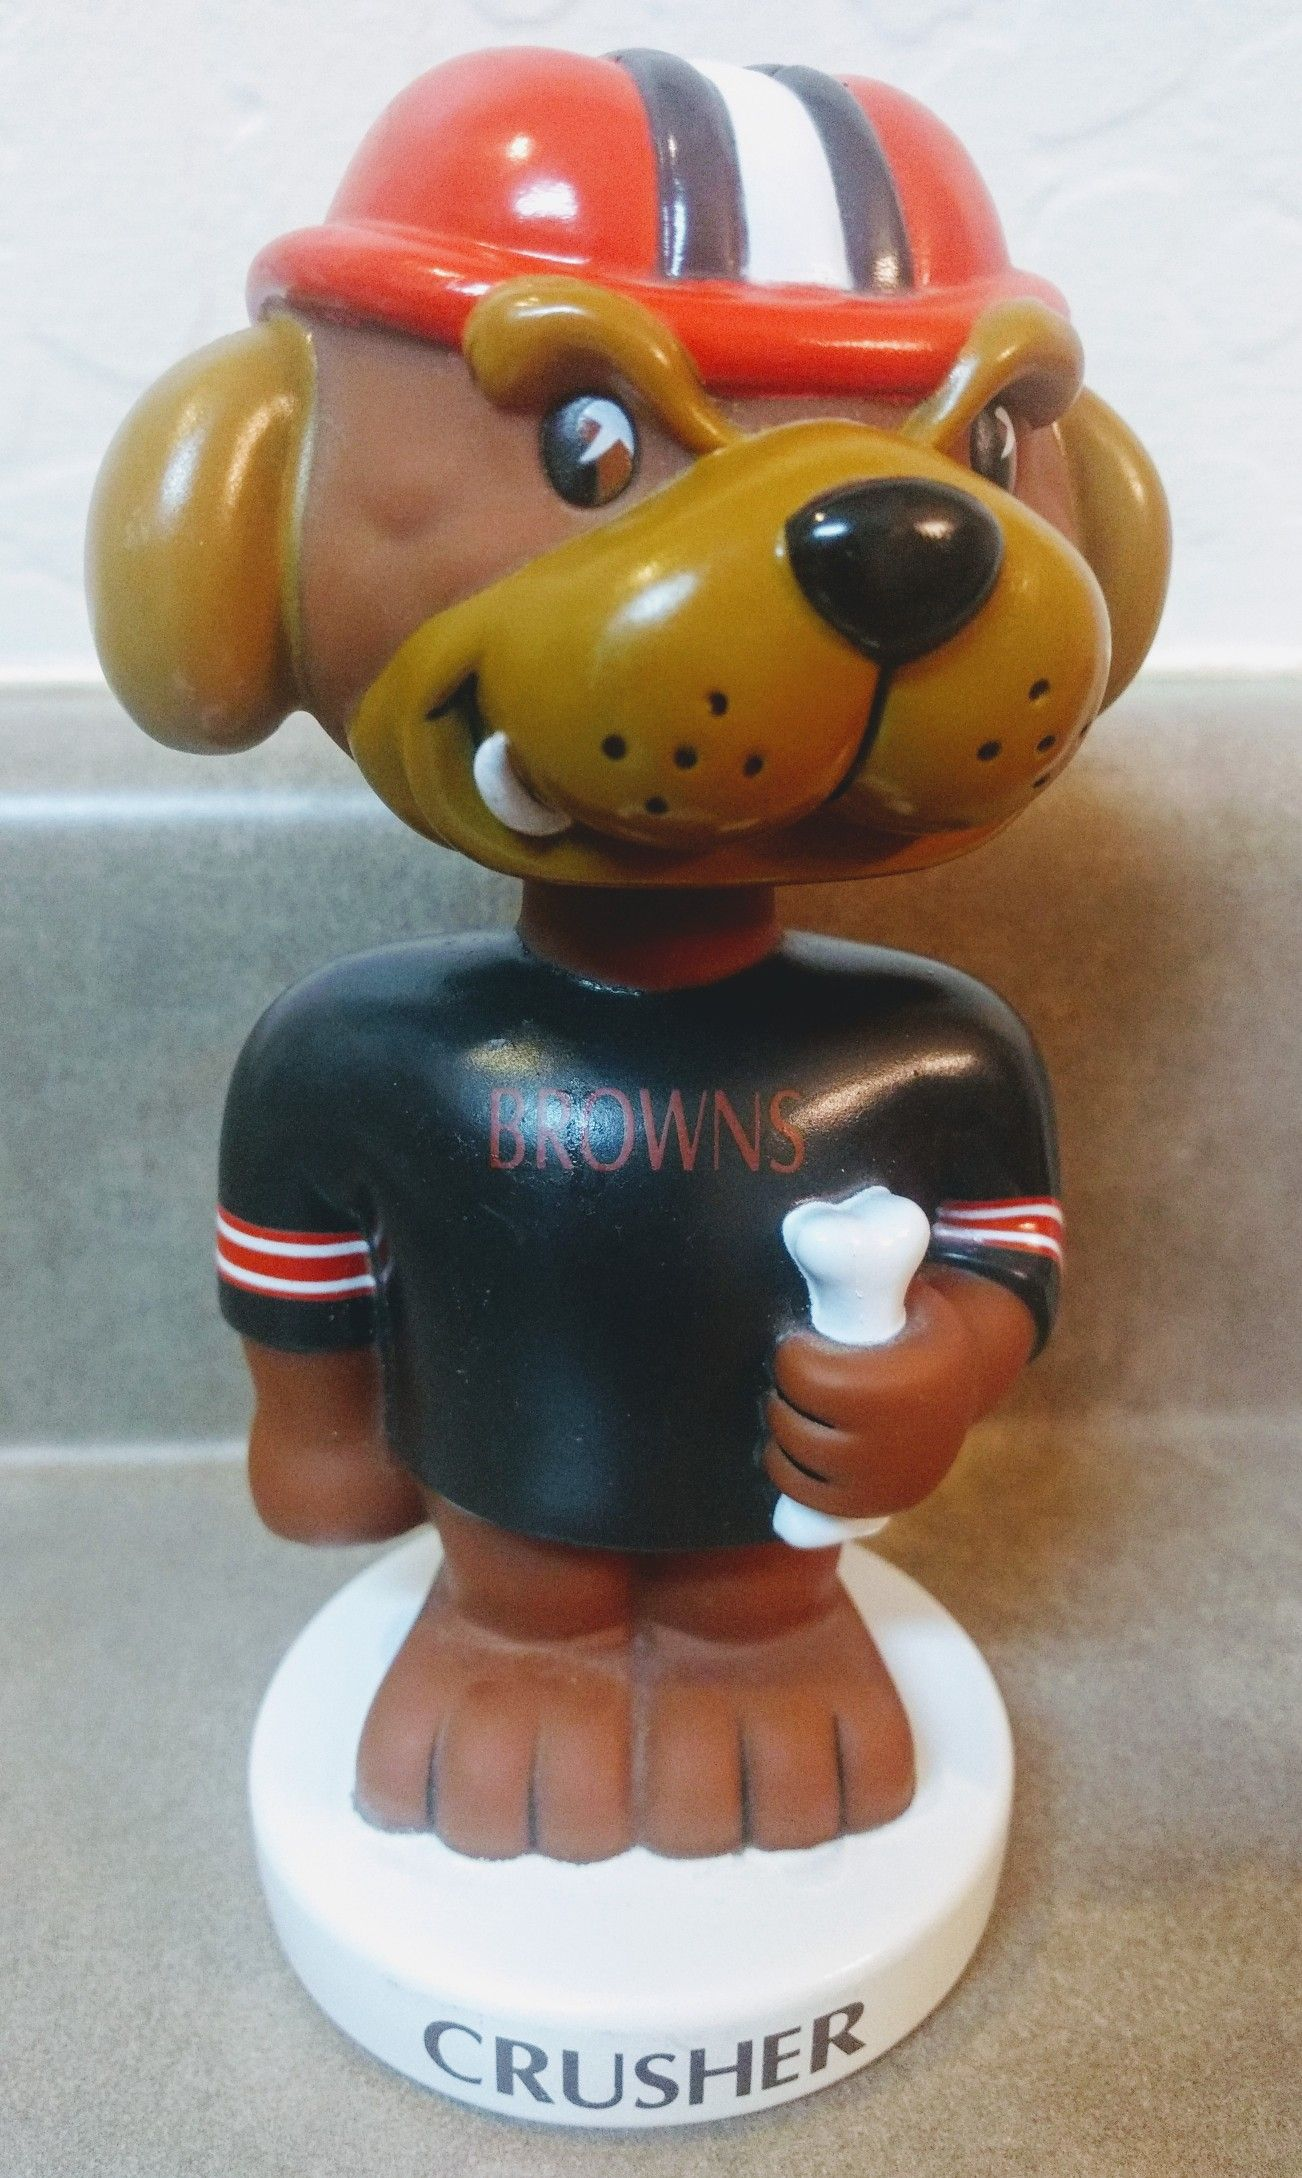 Cleveland Browns Crusher bobblehead Bobble head